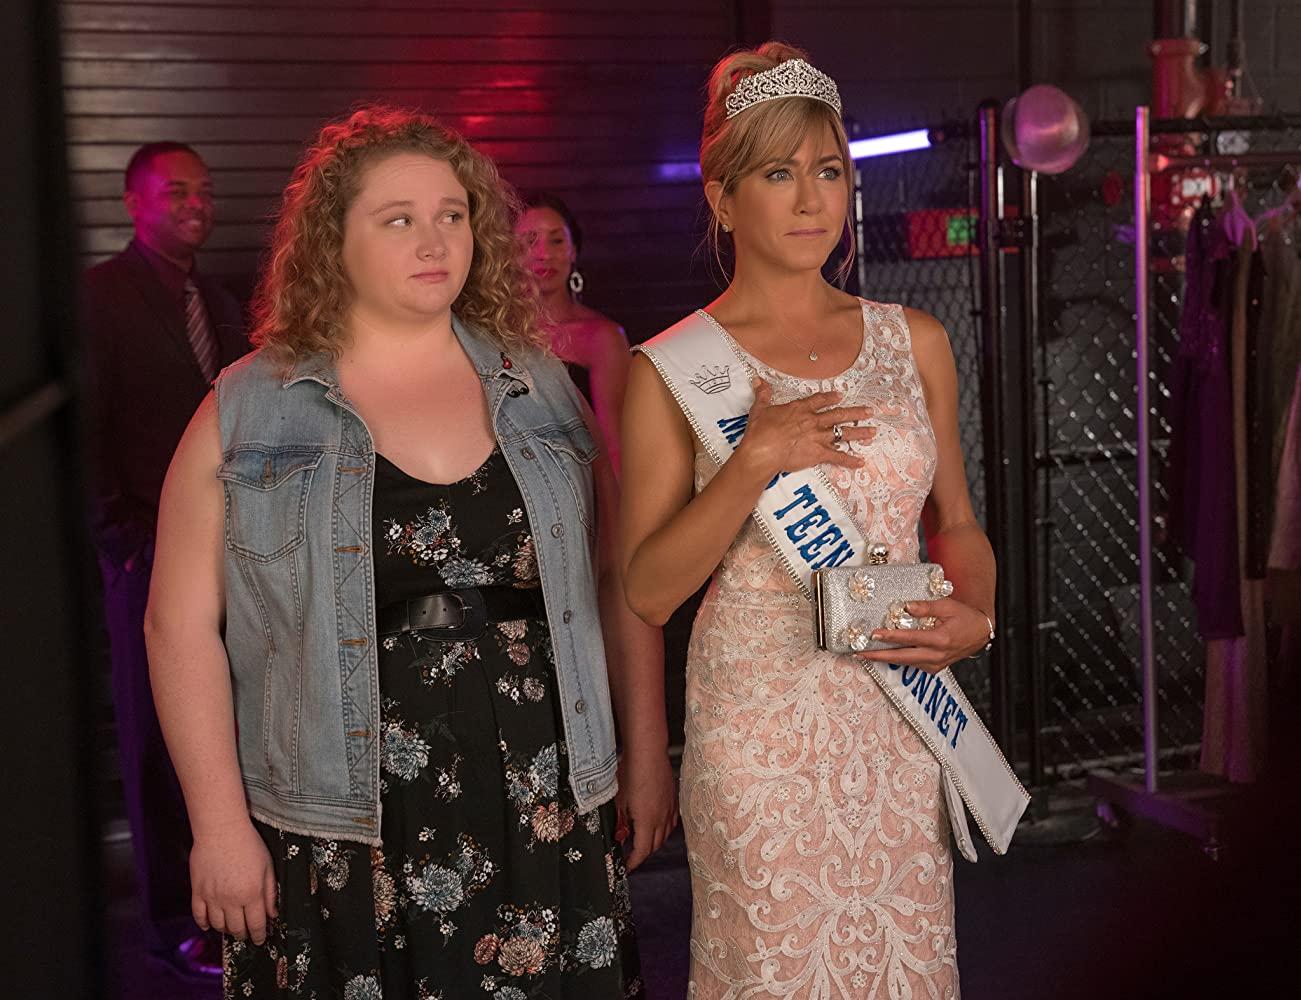 Jennifer Aniston and Danielle Macdonald in Dumplin' (2018)